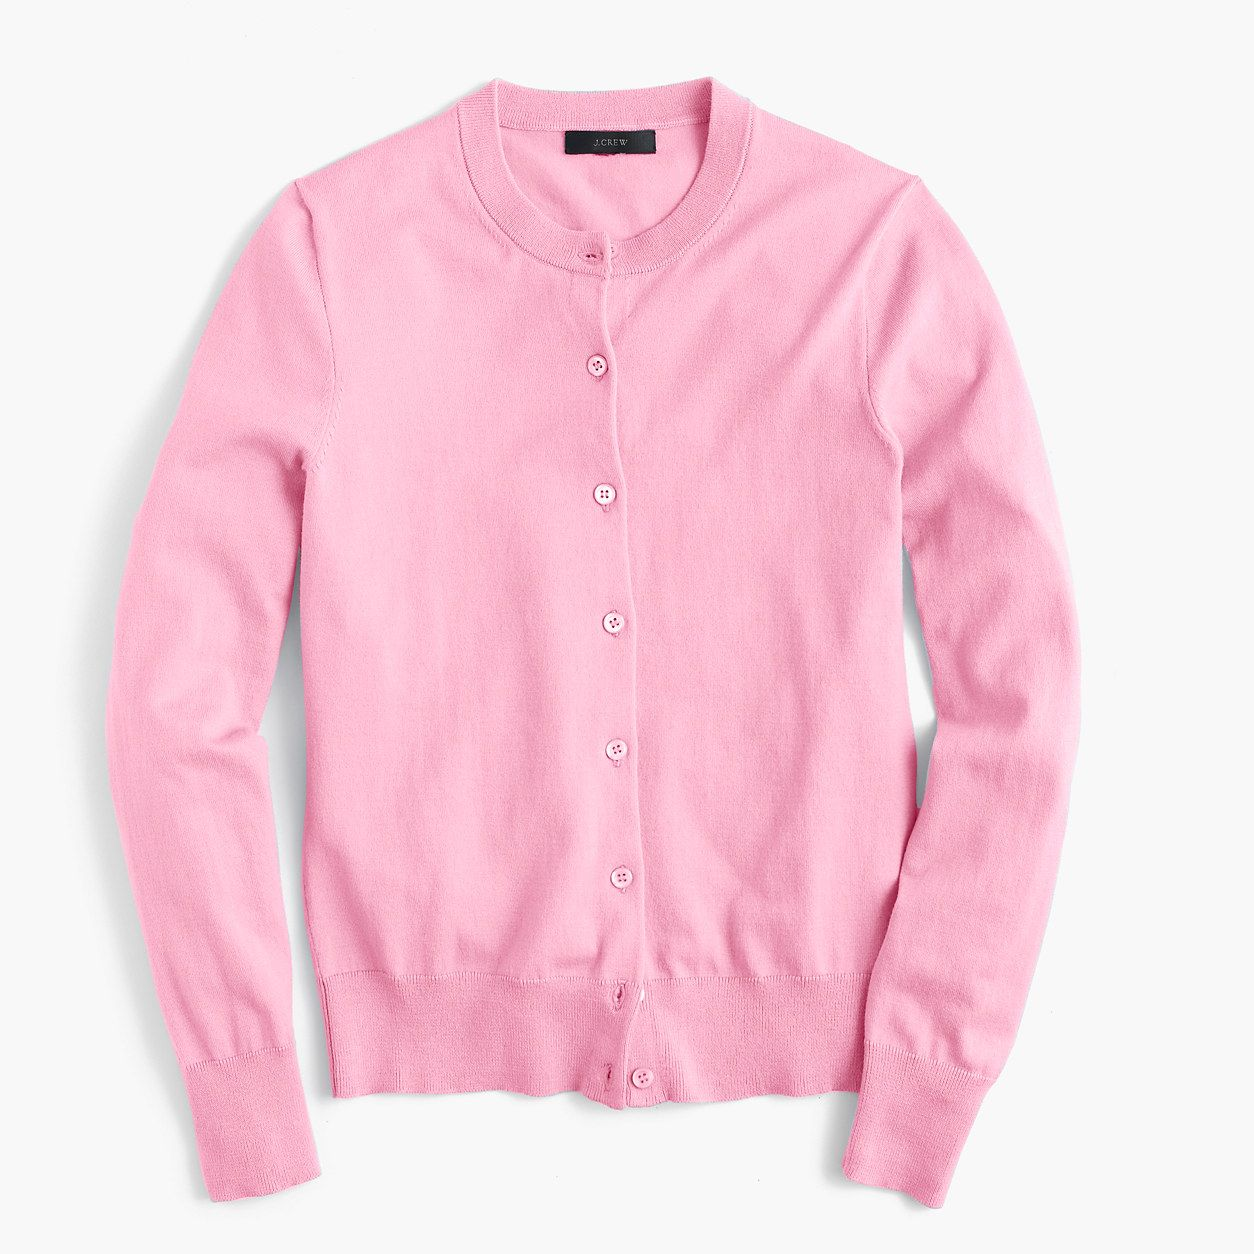 Jackie long-sleeved cardigan (sunset pink) | J.Crew | Closet ...